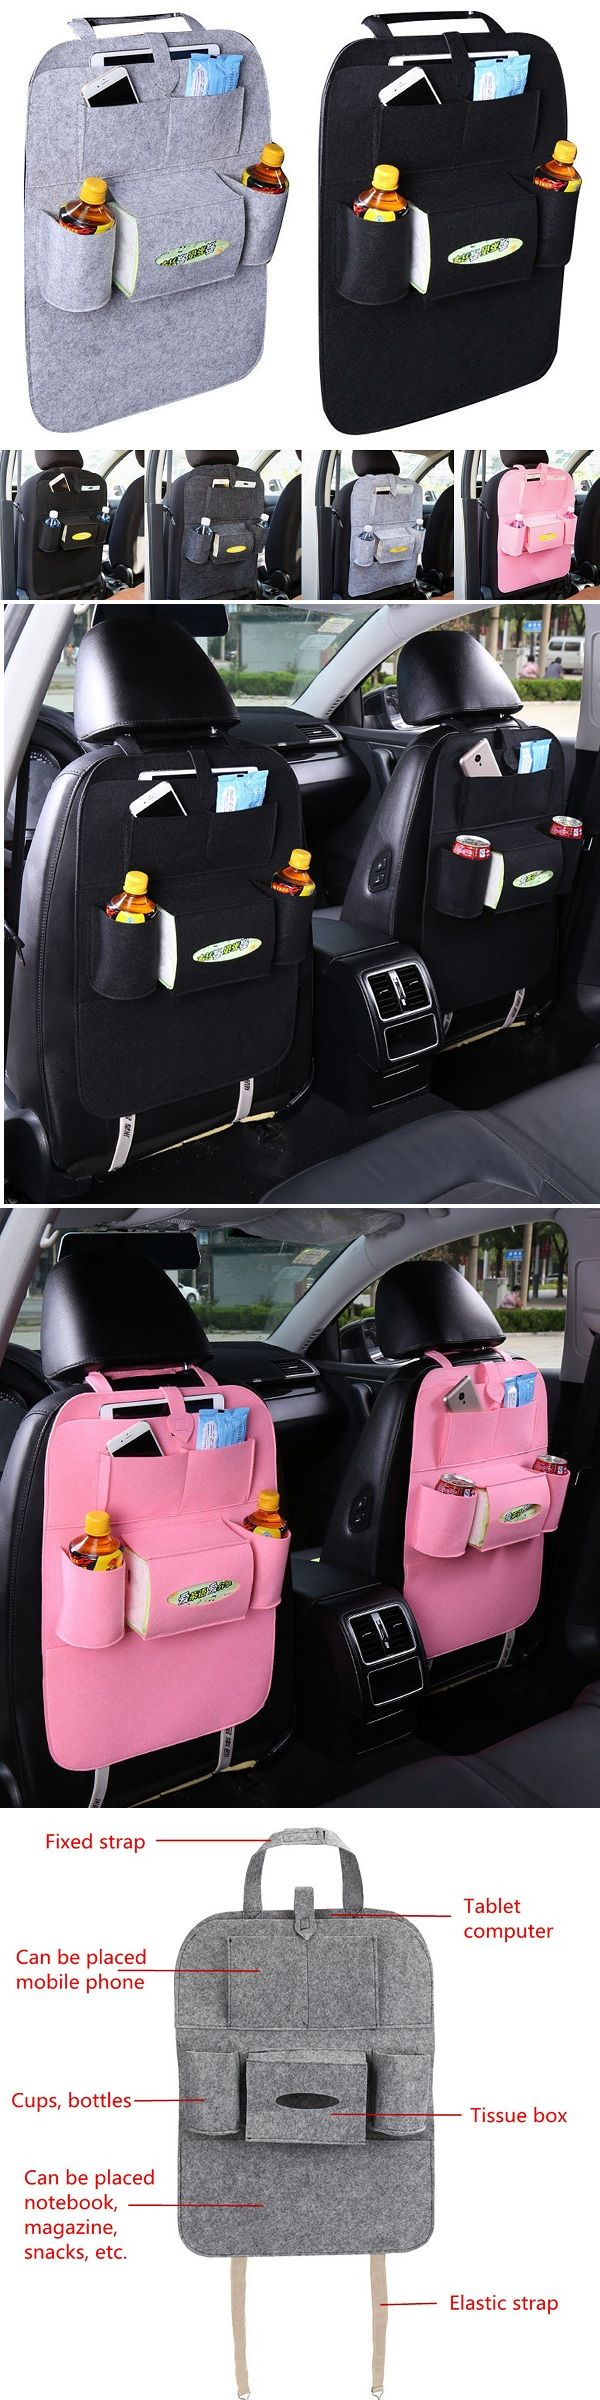 US$5.99 Universal Car Seat Back Multi-Pocket Hanging Holder Storage Bag Tidy Organizer Storage Shelves Bins